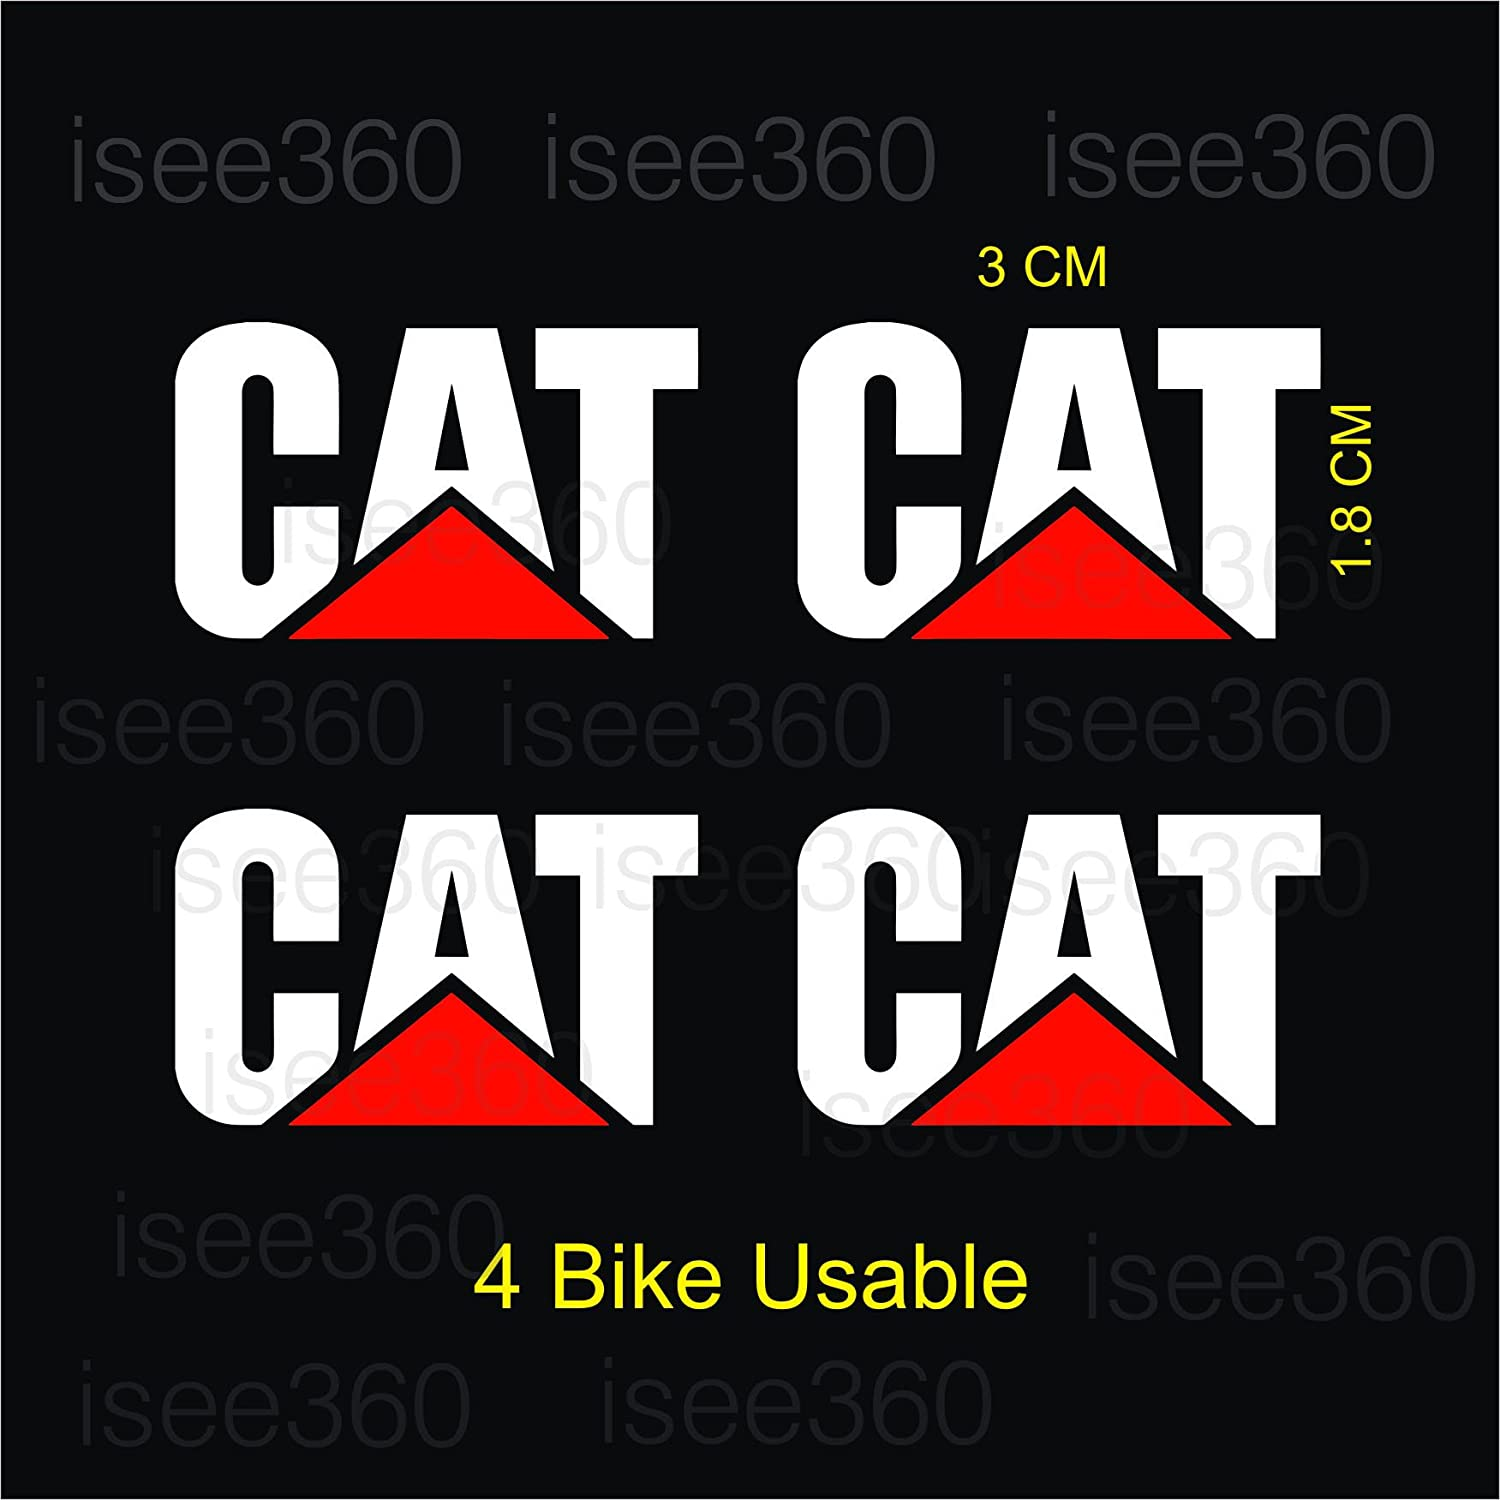 Isee 360cat logo water resistance die cut reflective sticker for handle bar disc box bike chaise visor mudguard car white and red pack of 4